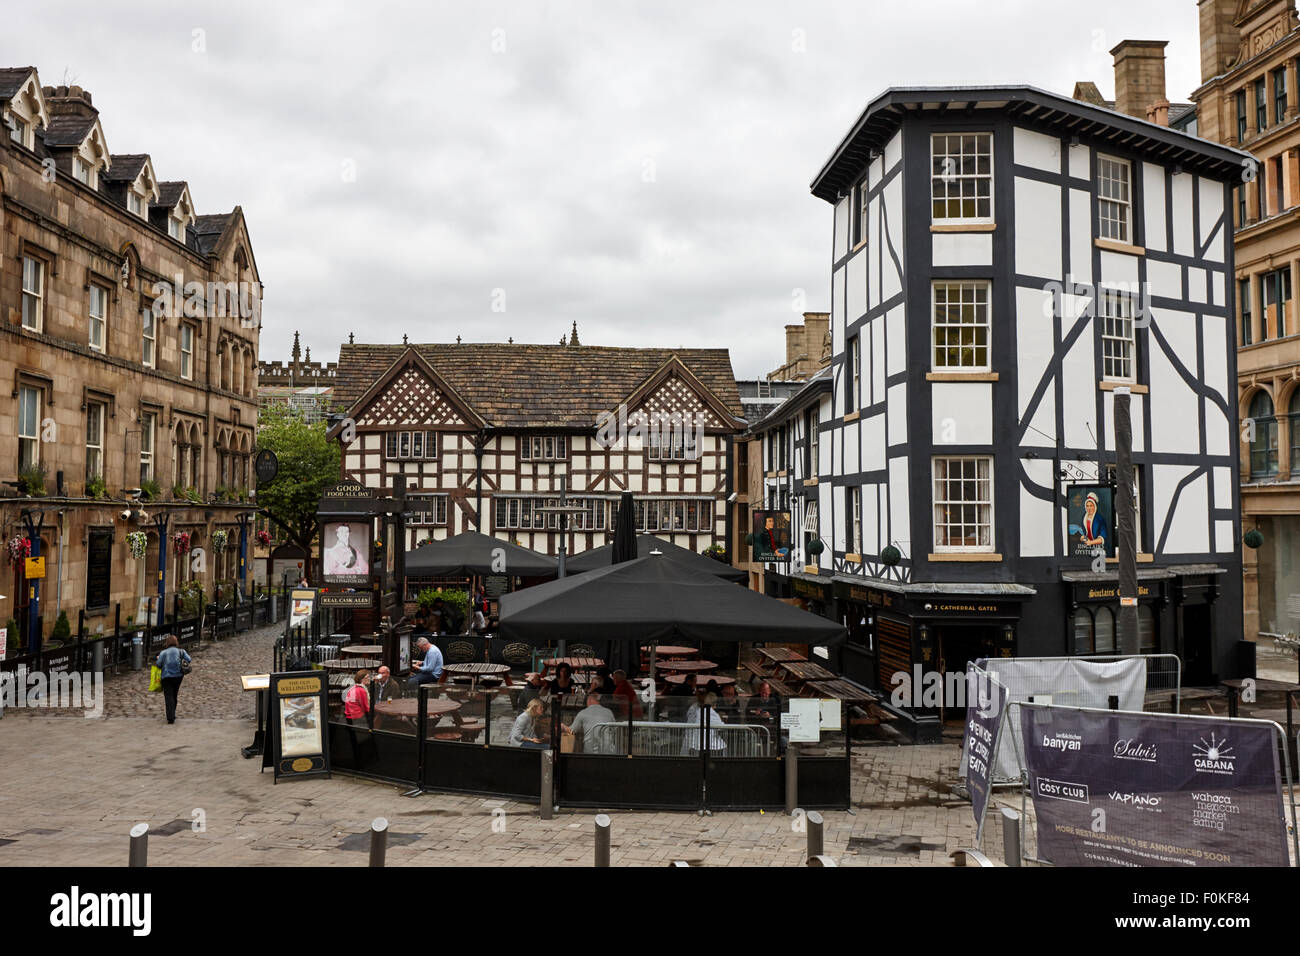 sinclairs oyster bar and old wellington inn in shambles square Manchester England UK Stock Photo